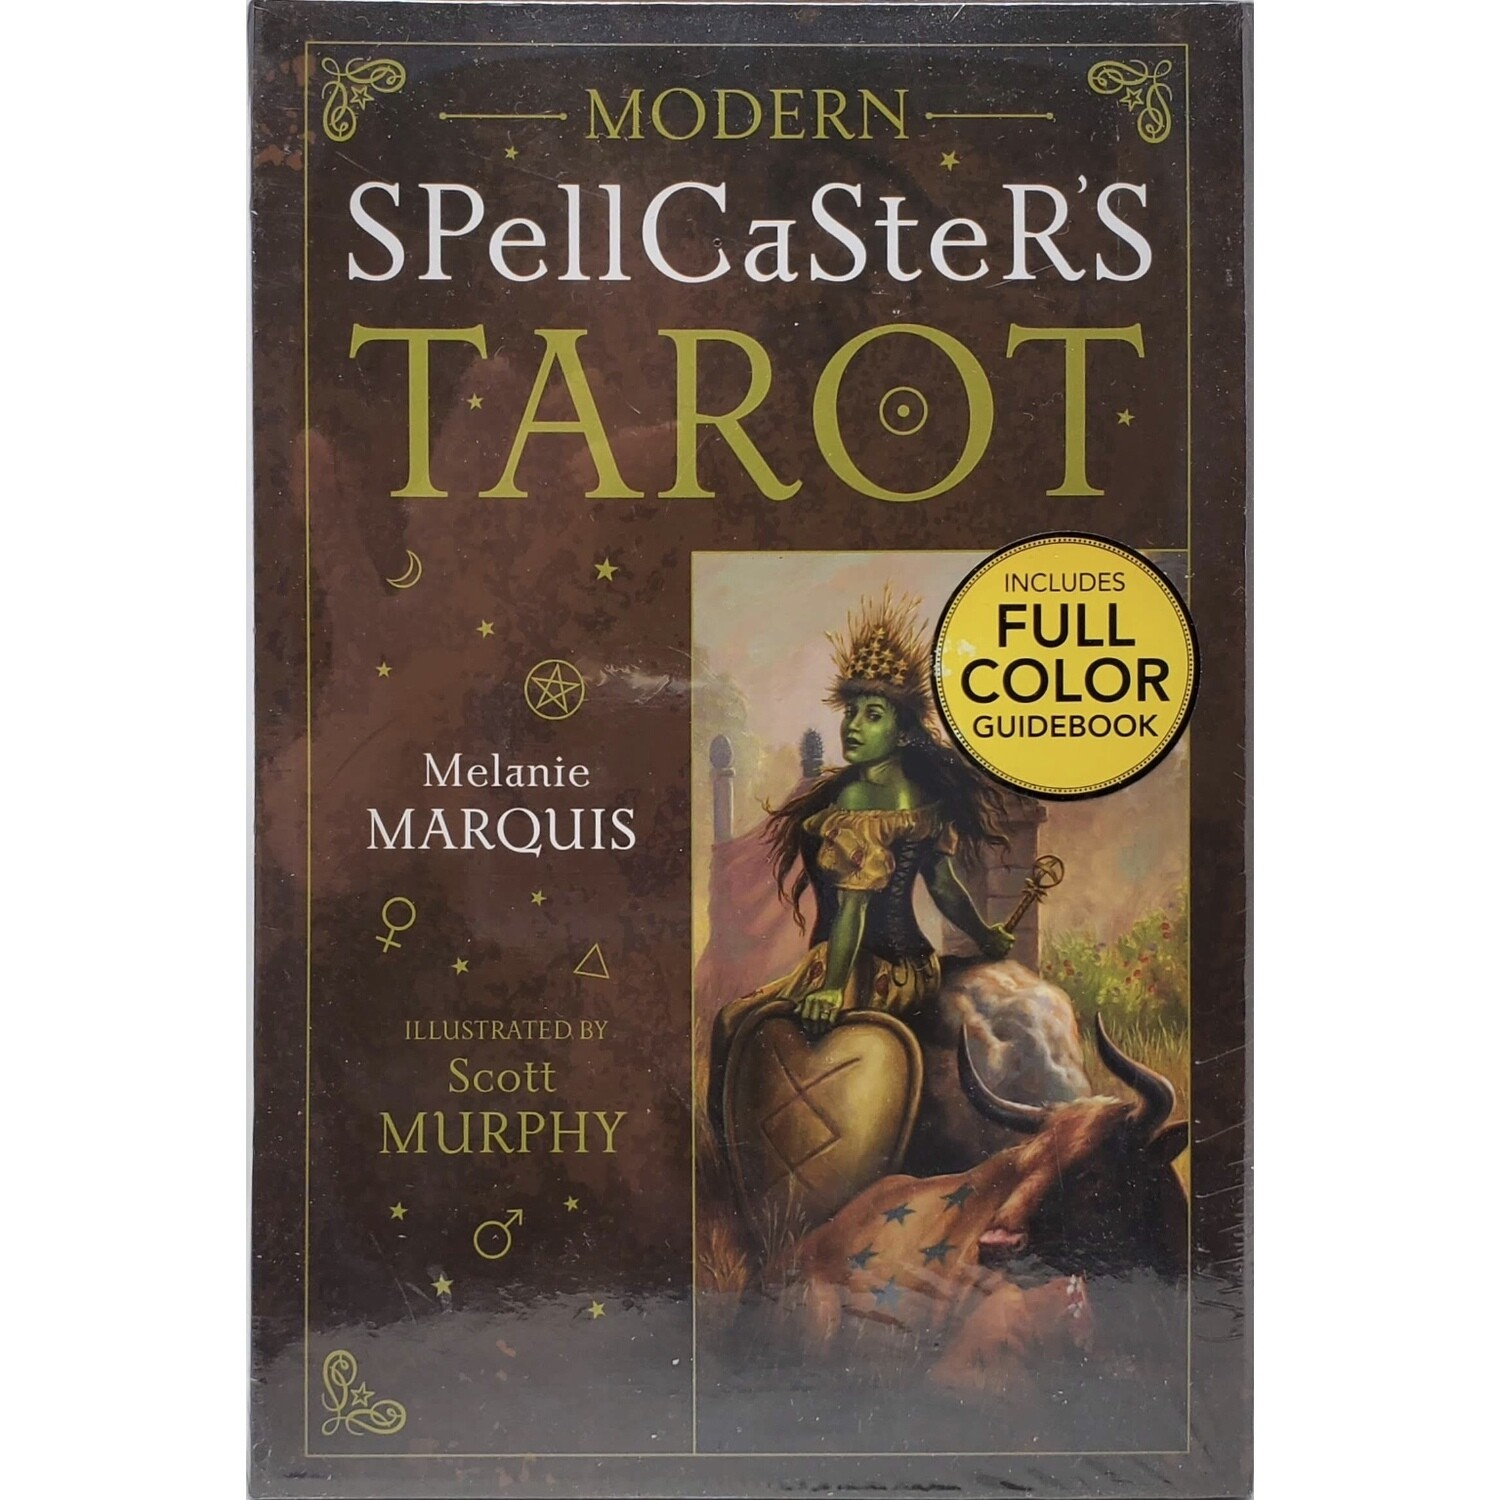 MODERN SPELLCASTER'S DECK AND BOOK